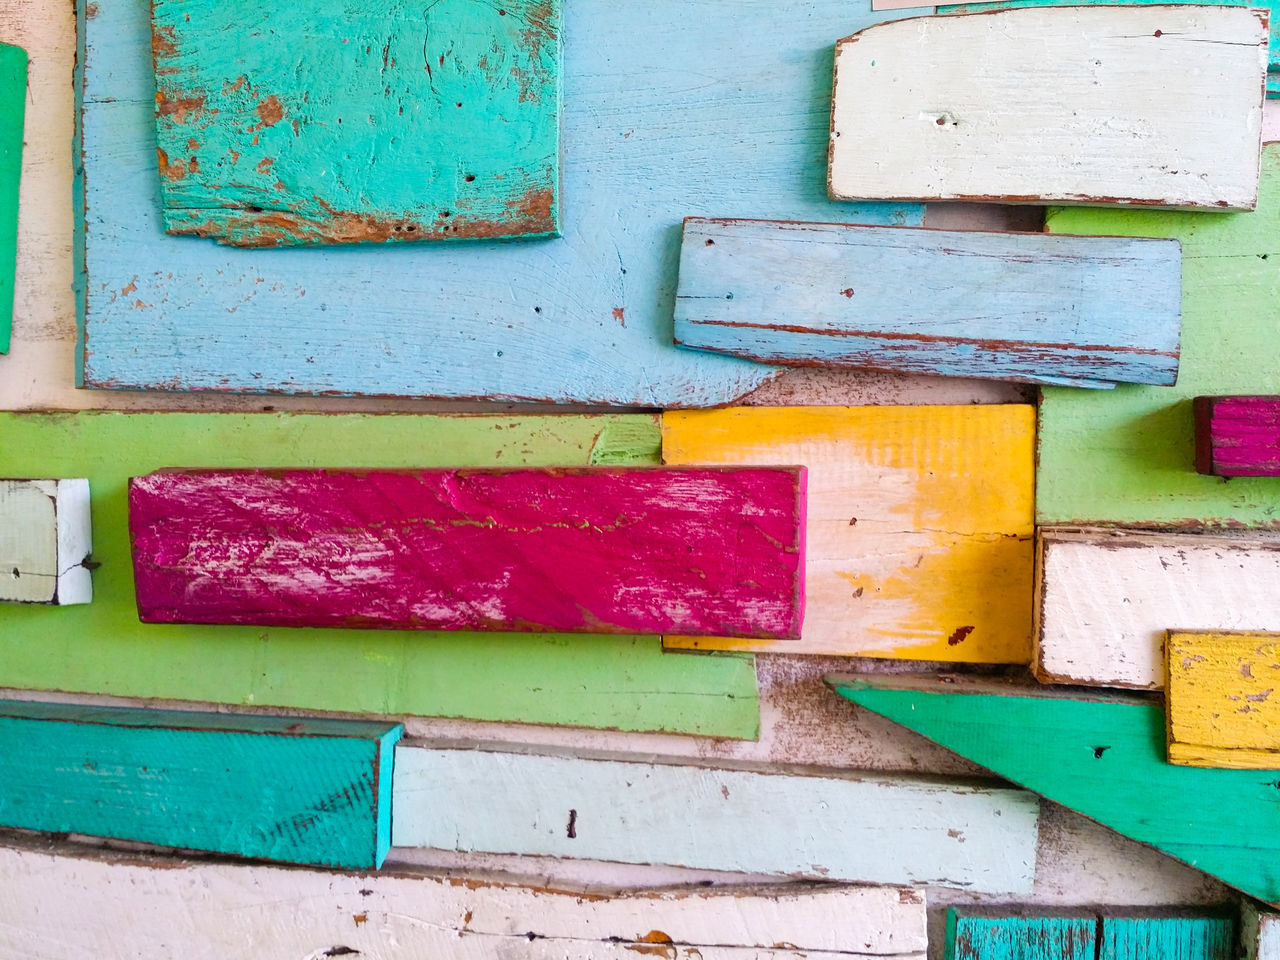 Colorful wooden background. Multi Colored Wood - Material Backgrounds Variation Green Color Paint No People Built Structure Day Outdoors Architecture Close-up Textures Surface Art Design Decor Decoration Decorative Yellow Color Red Color Decoracion Blue Color Wall Wall Art